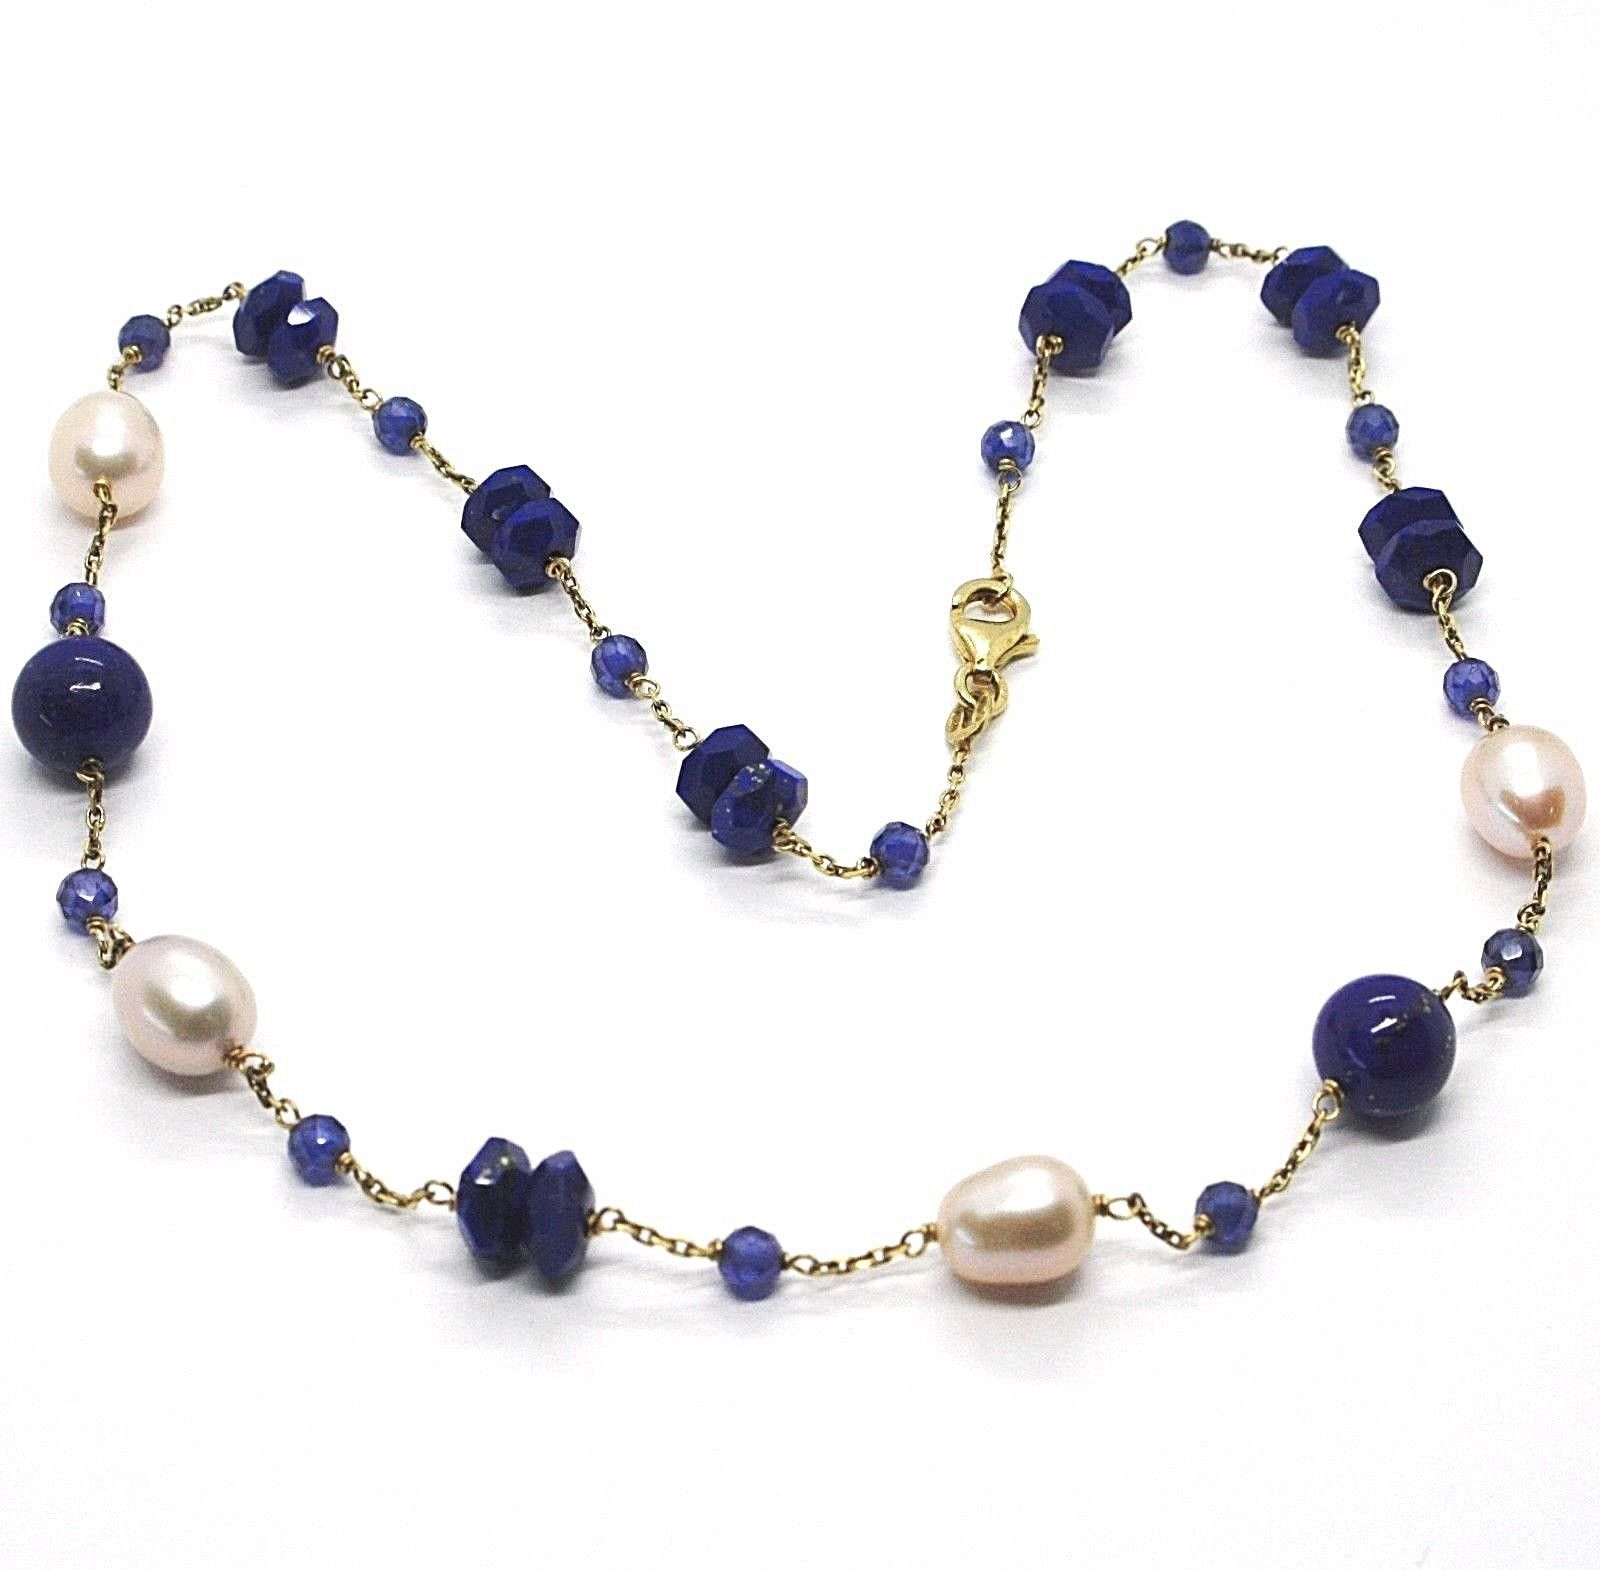 Silver necklace 925, Yellow, Blue Lapis Lazuli Disk and spheres, Pearls, 45 cm